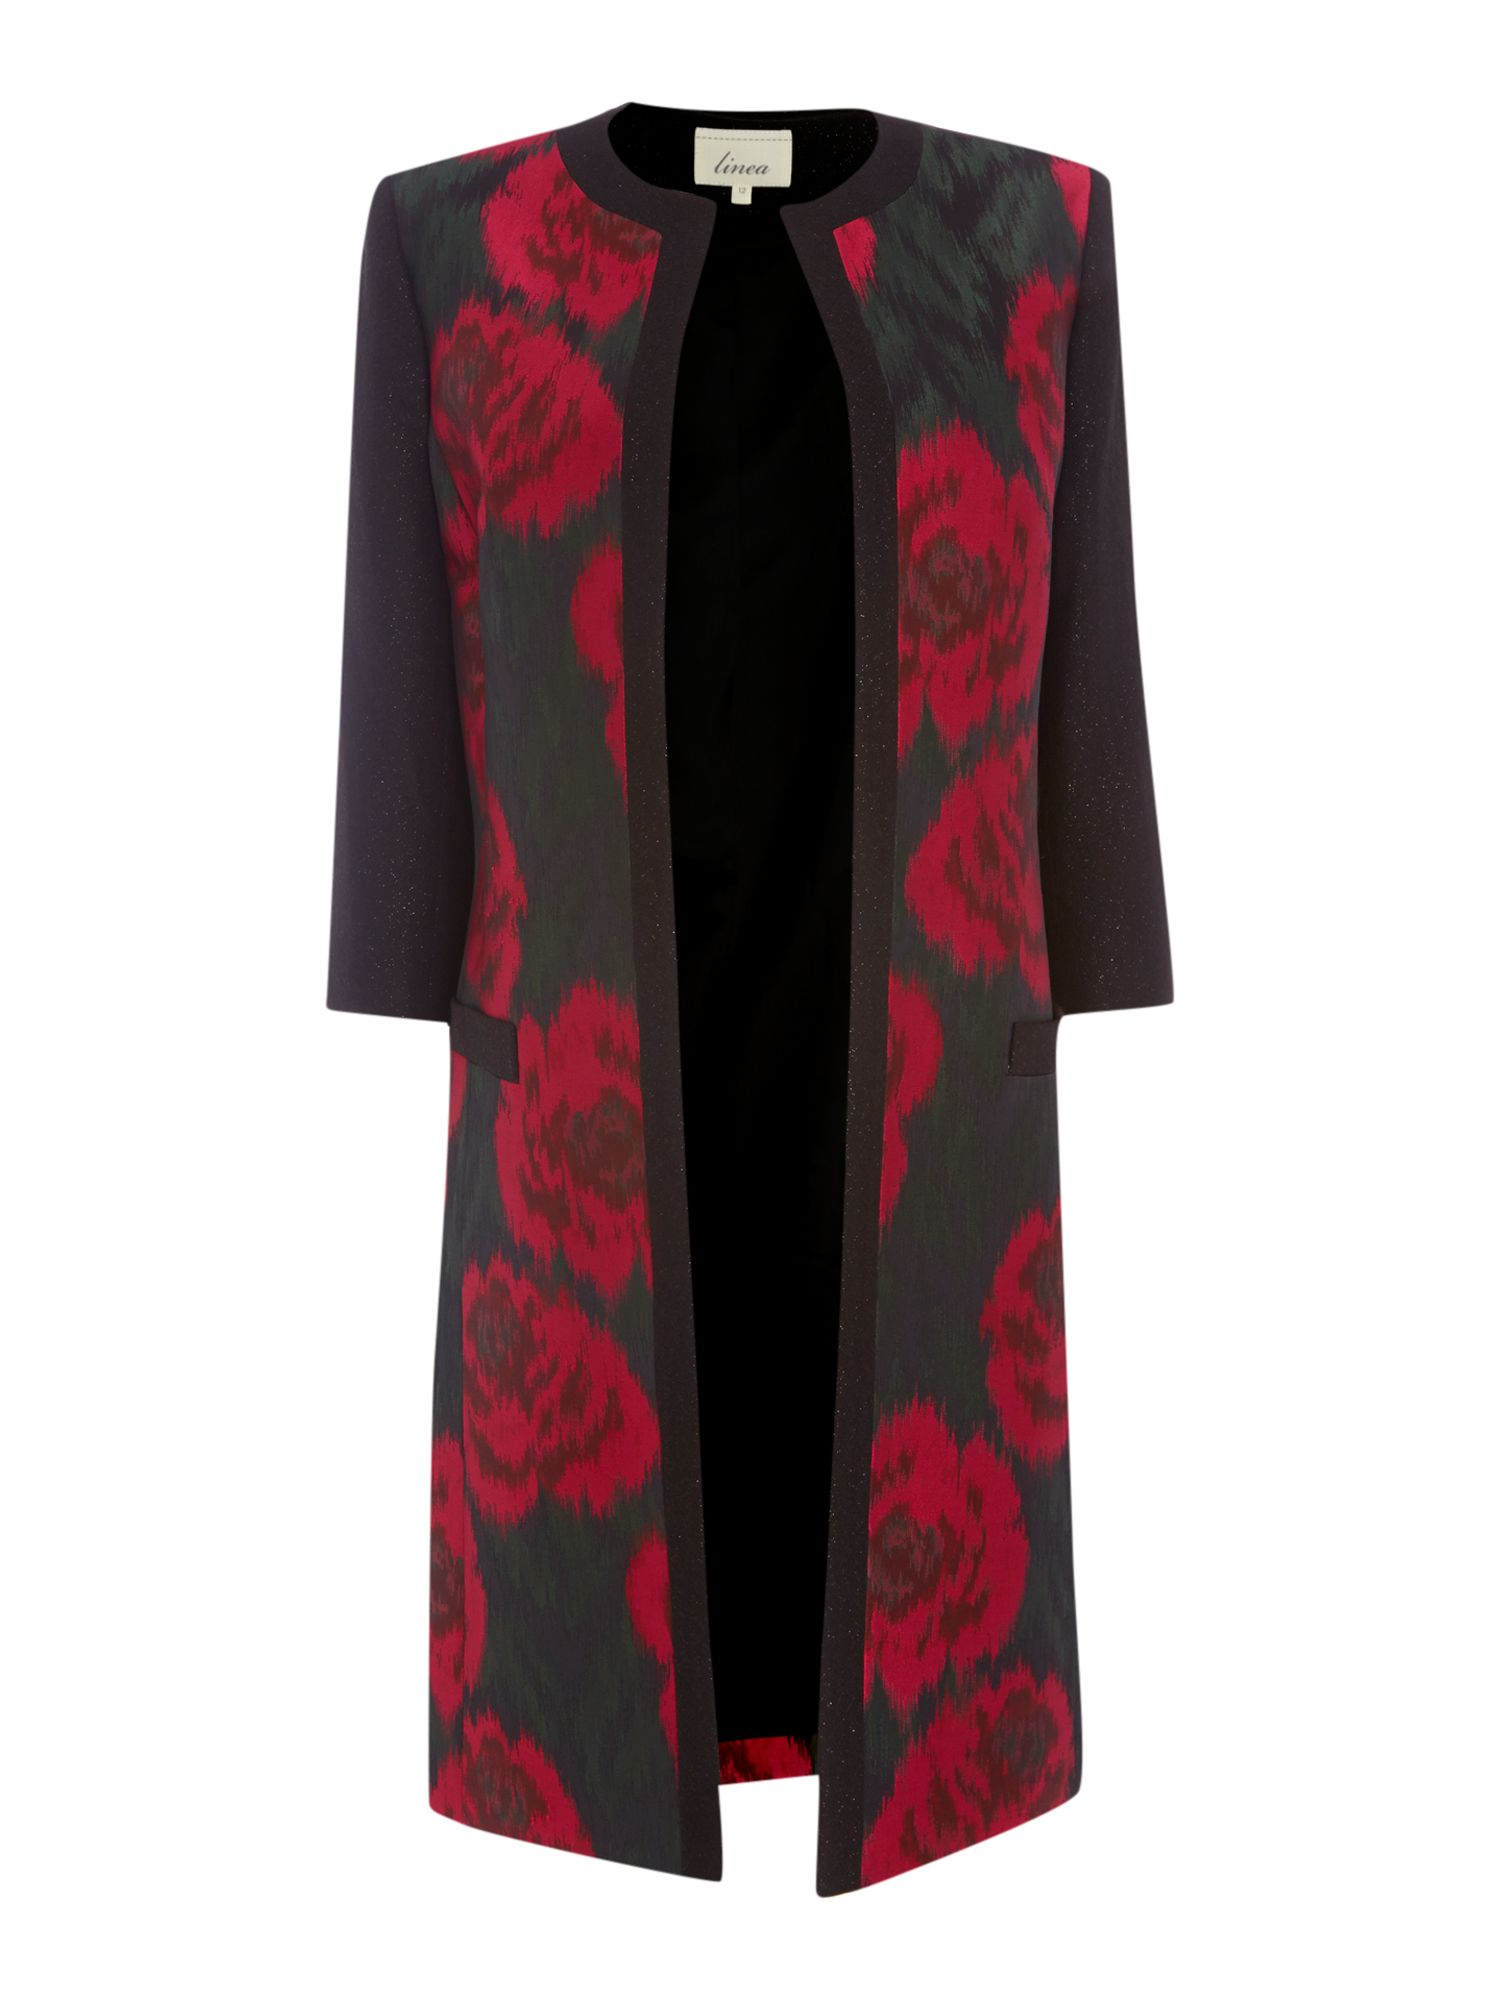 Linea Jacquard rose floral lady coat, Multi-Coloured